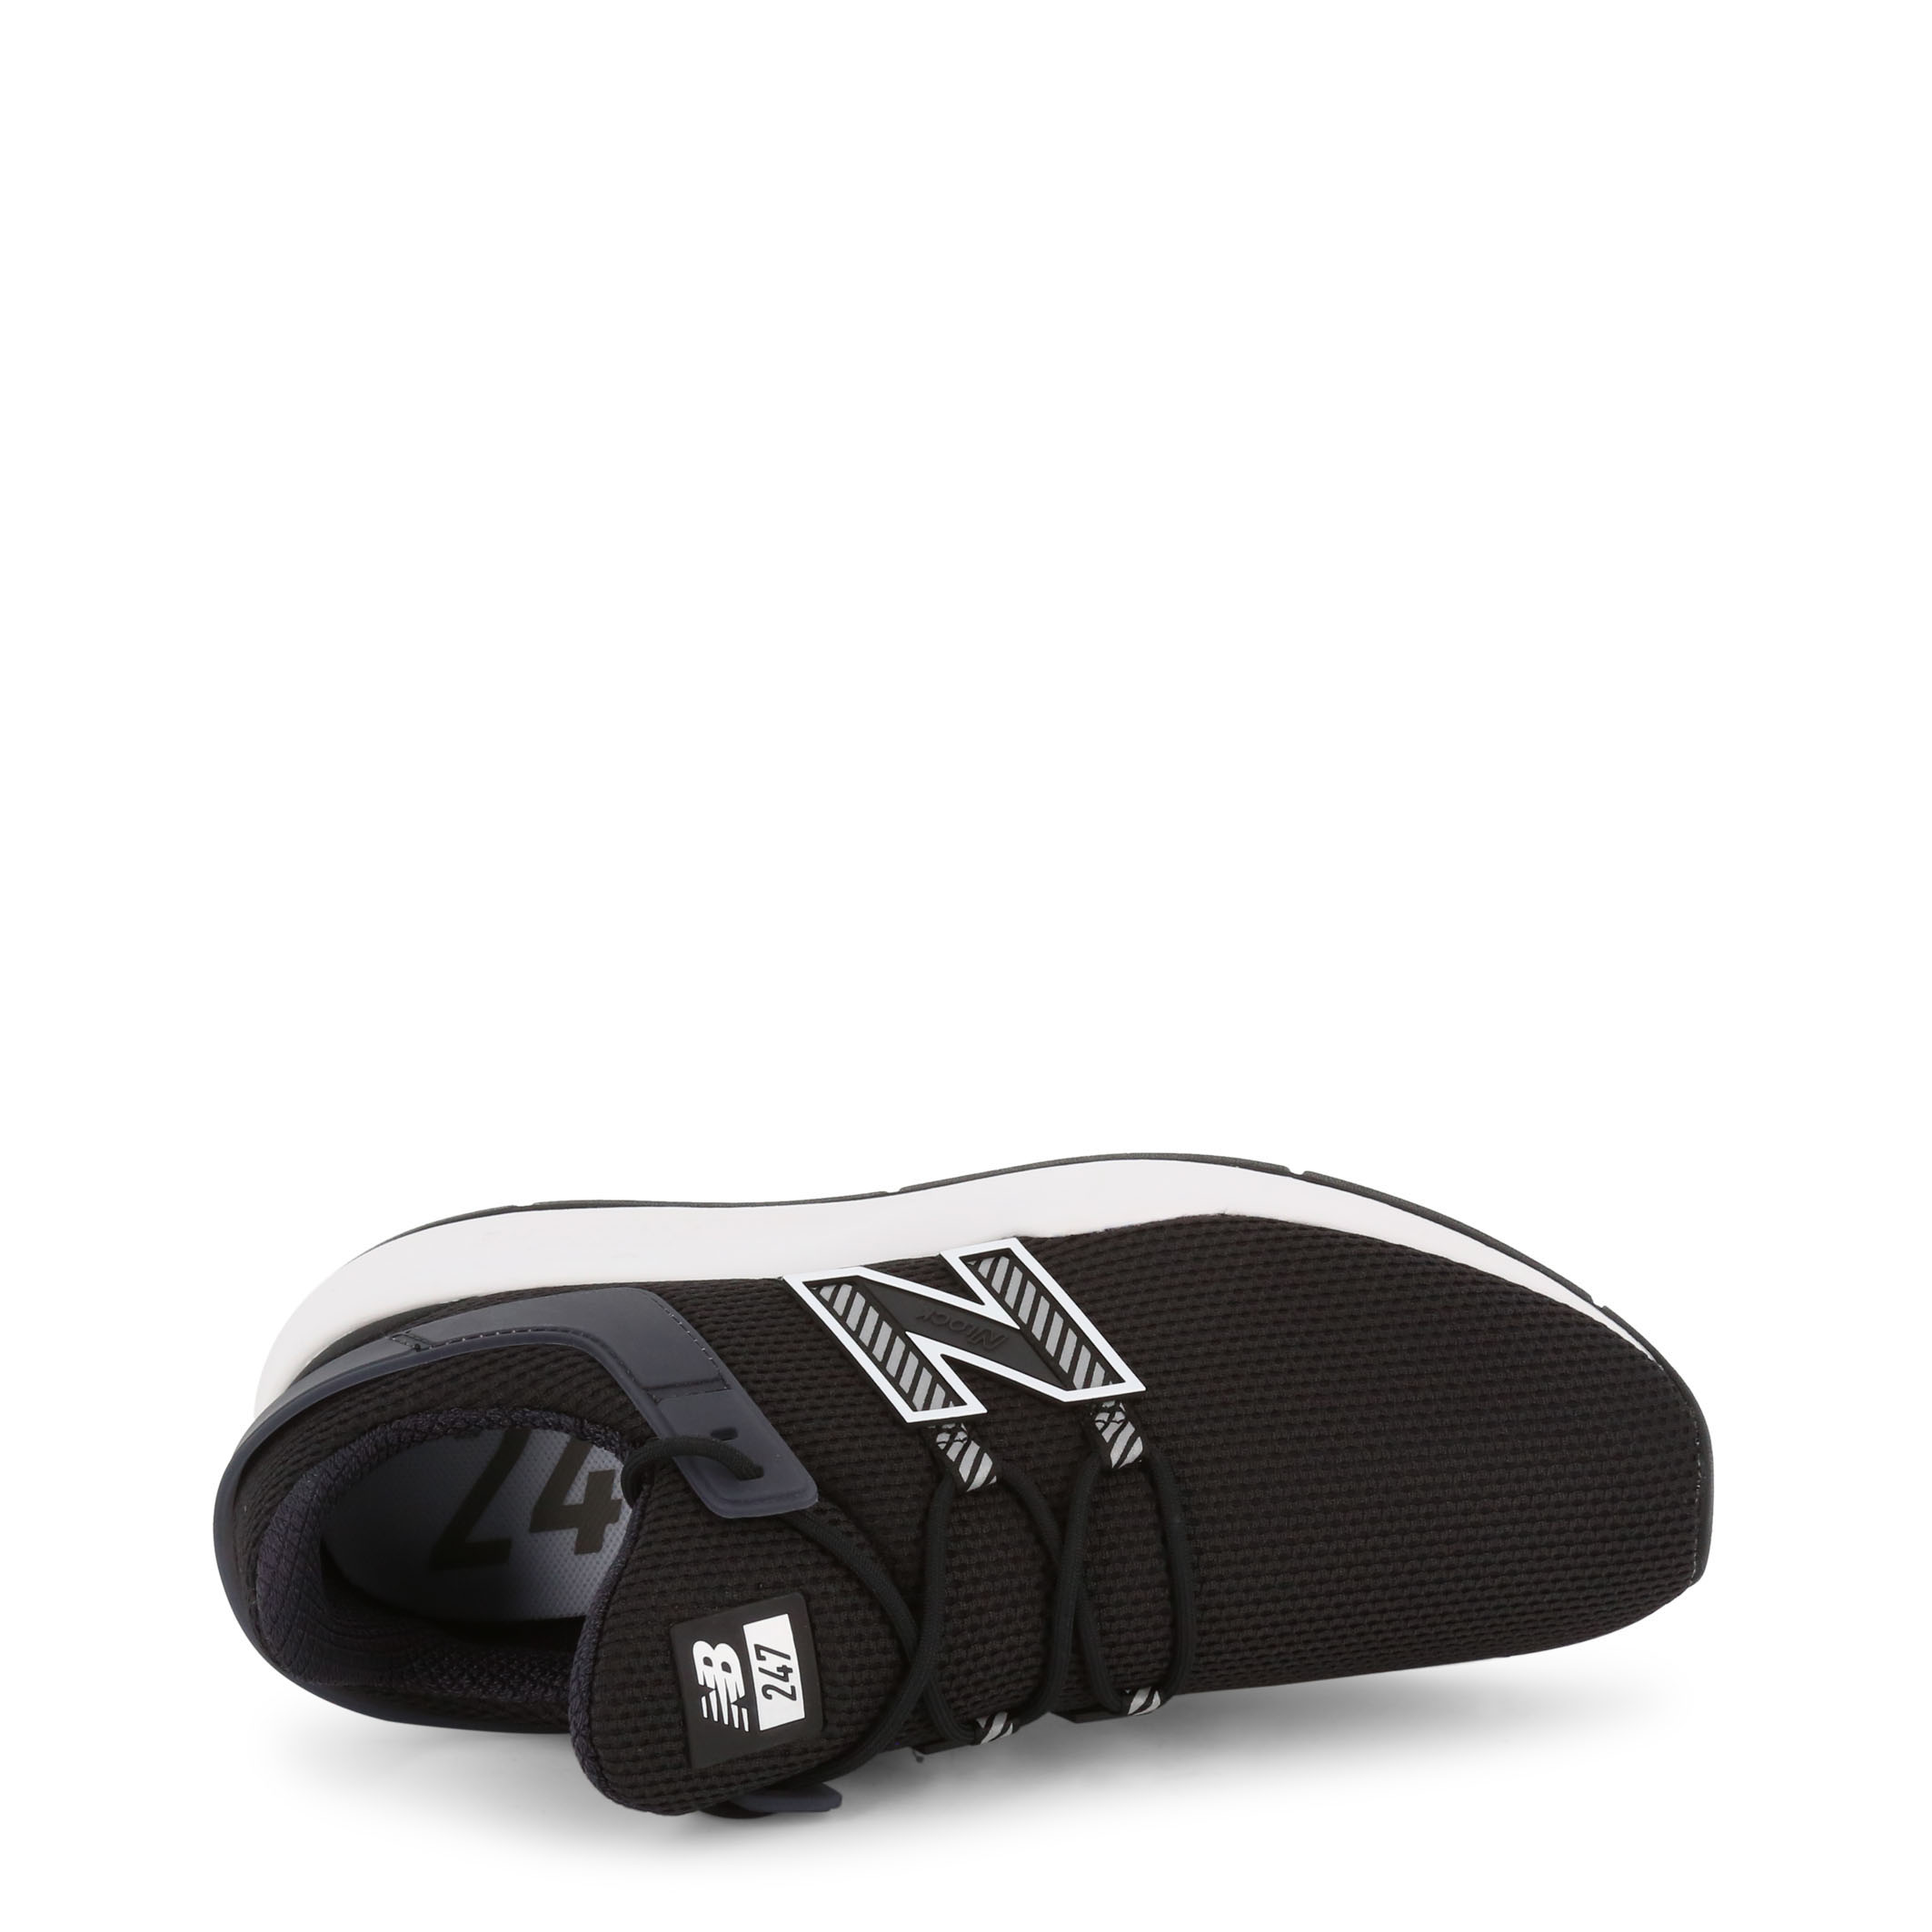 Baskets / Sport  New balance MS247 black